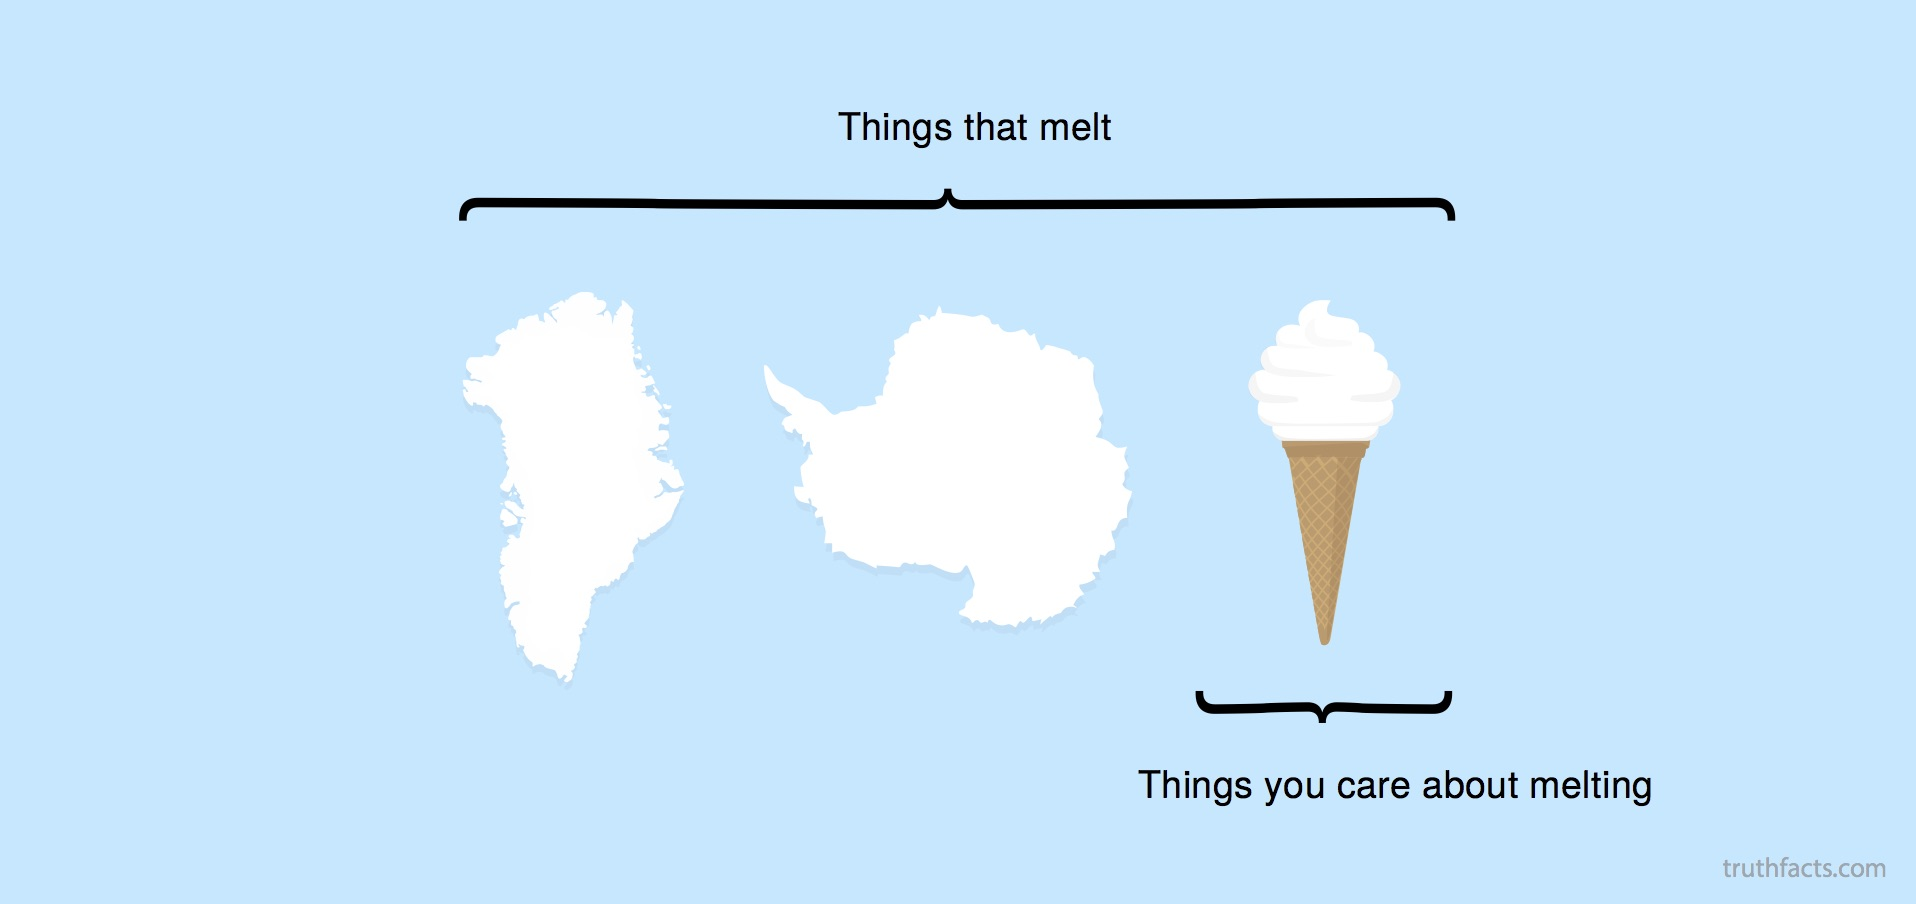 Things that melt